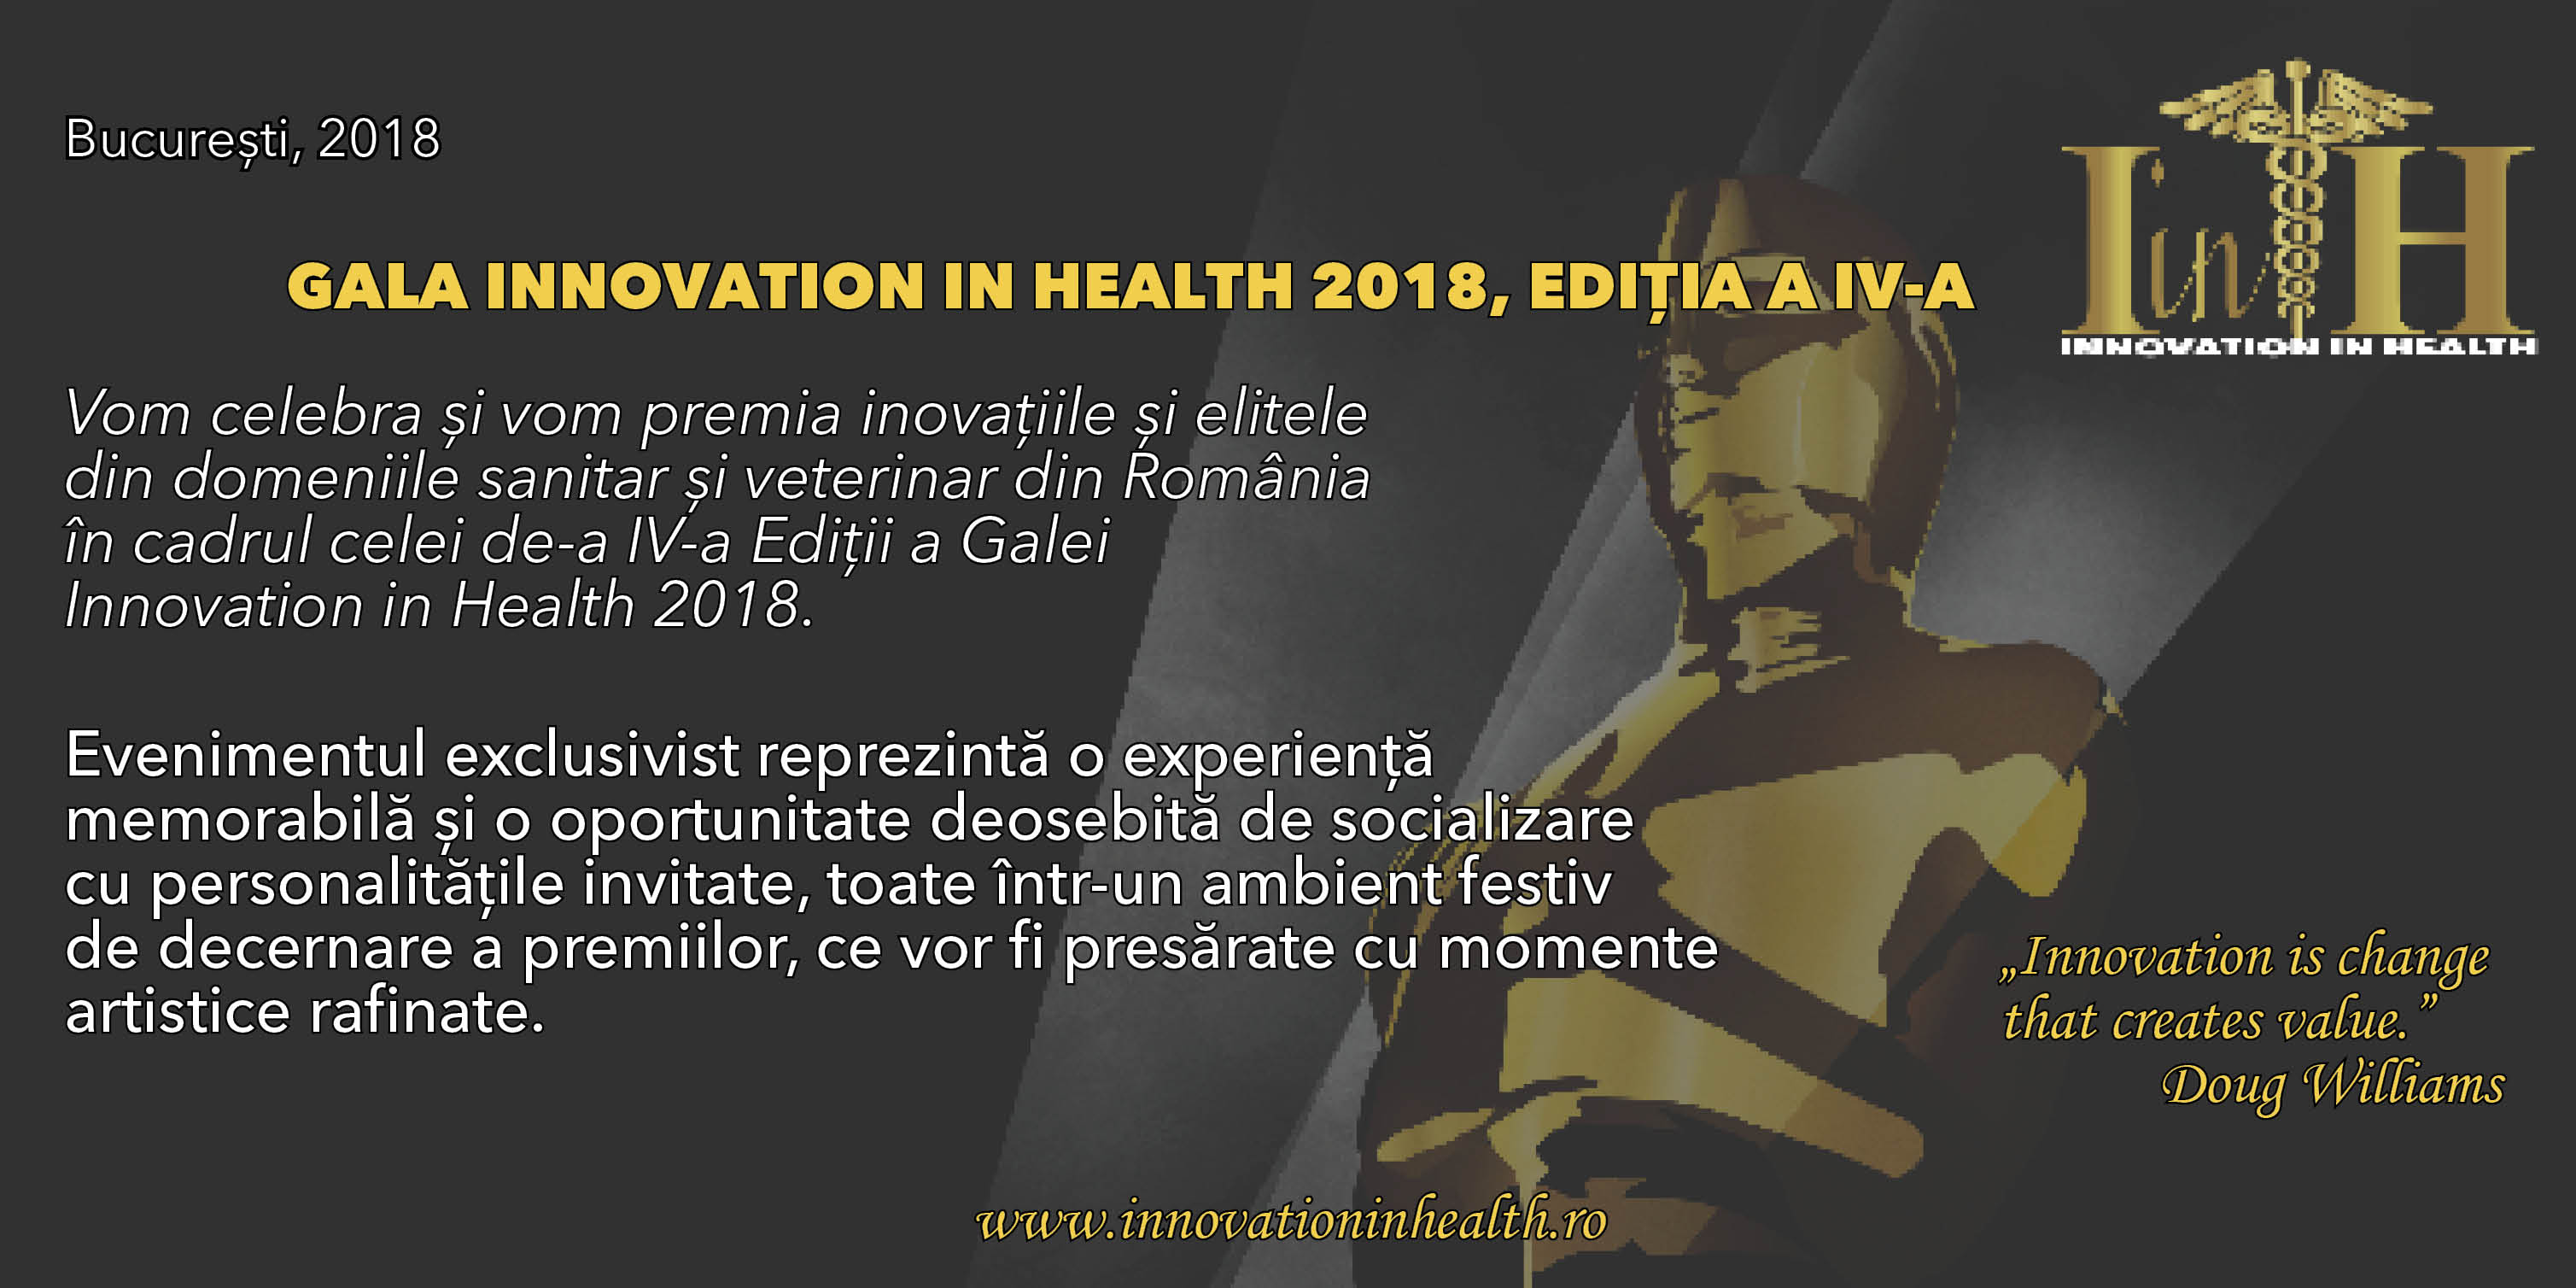 Gala Innovation in Health 2018